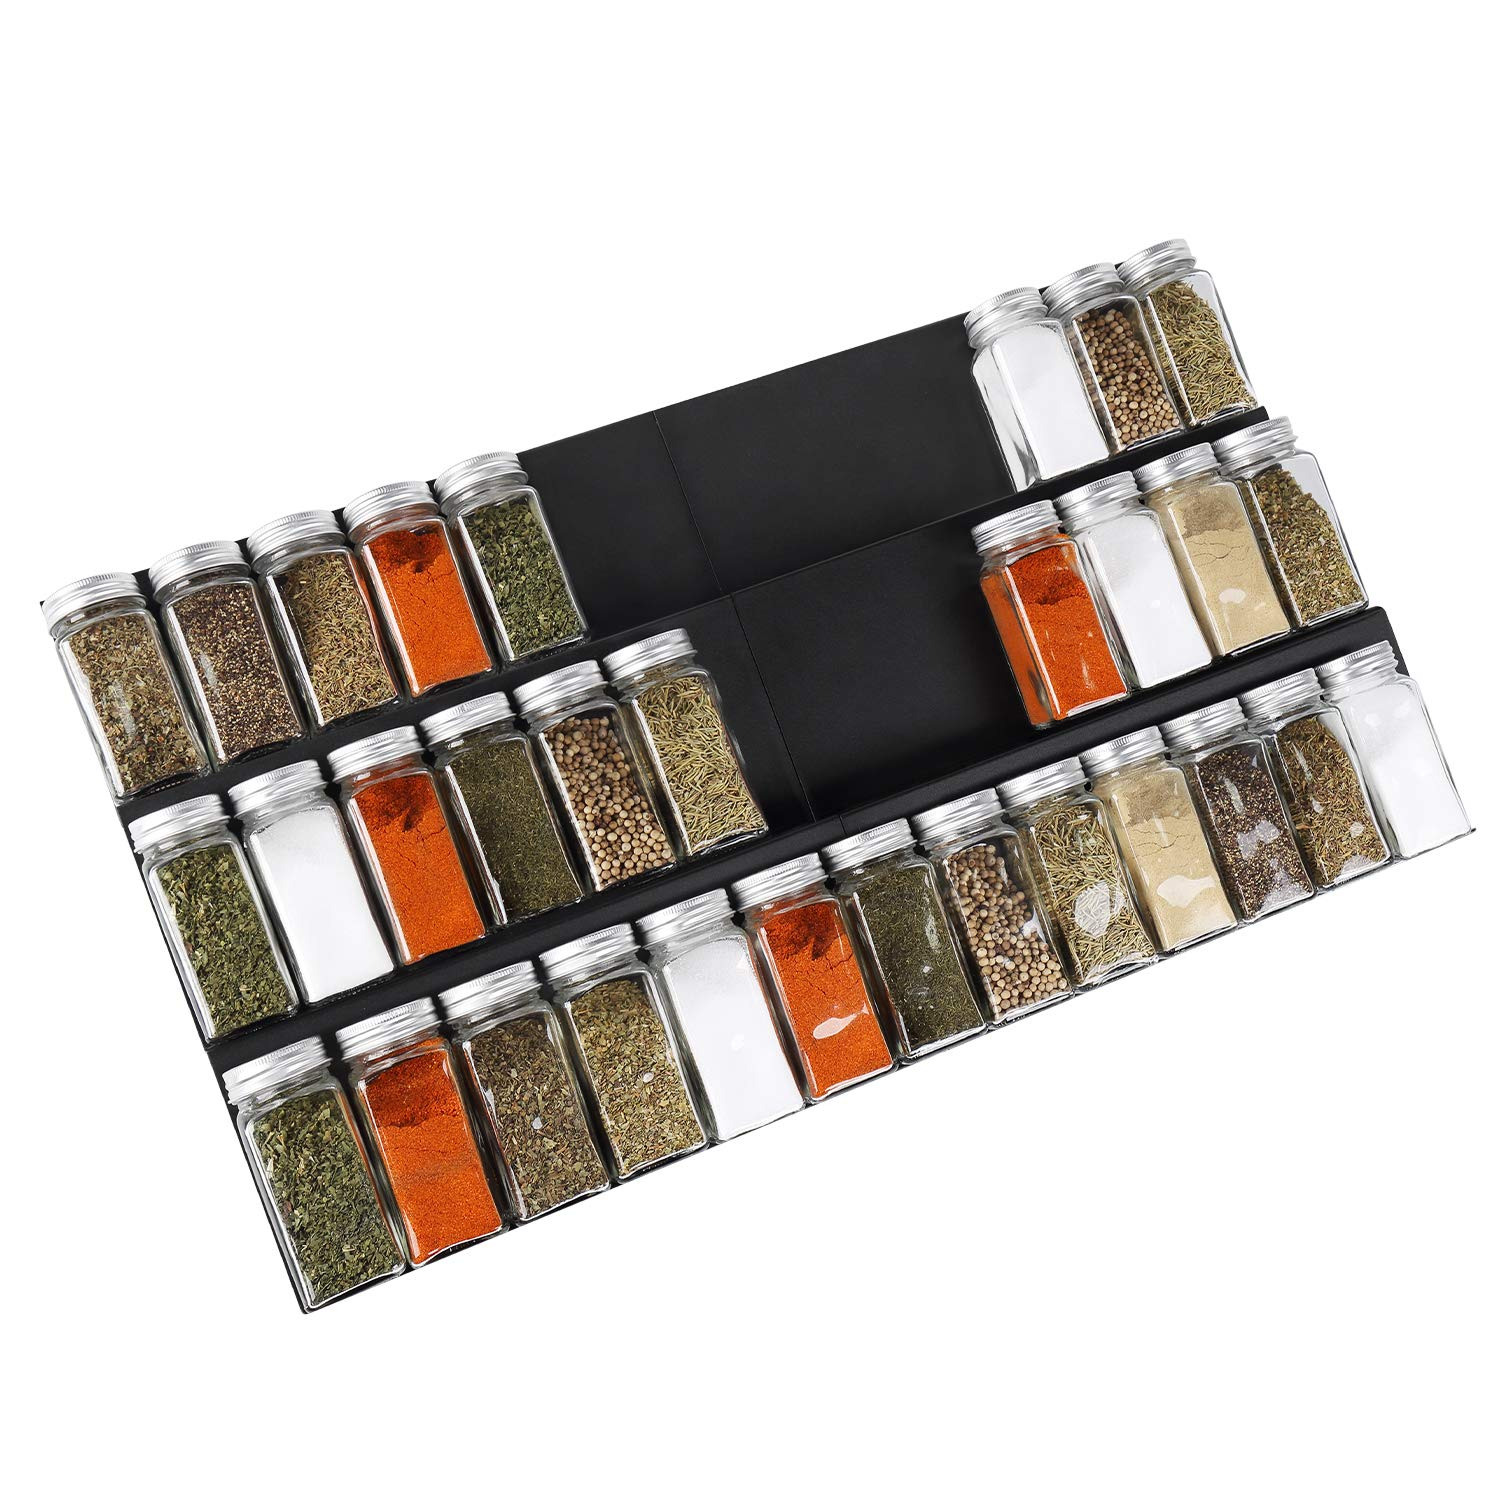 Geesta Adjustable Expandable Spice Rack Tray, 2 Pack 3-Tier Steel Spice Drawer Organizer Insert for Kitchen